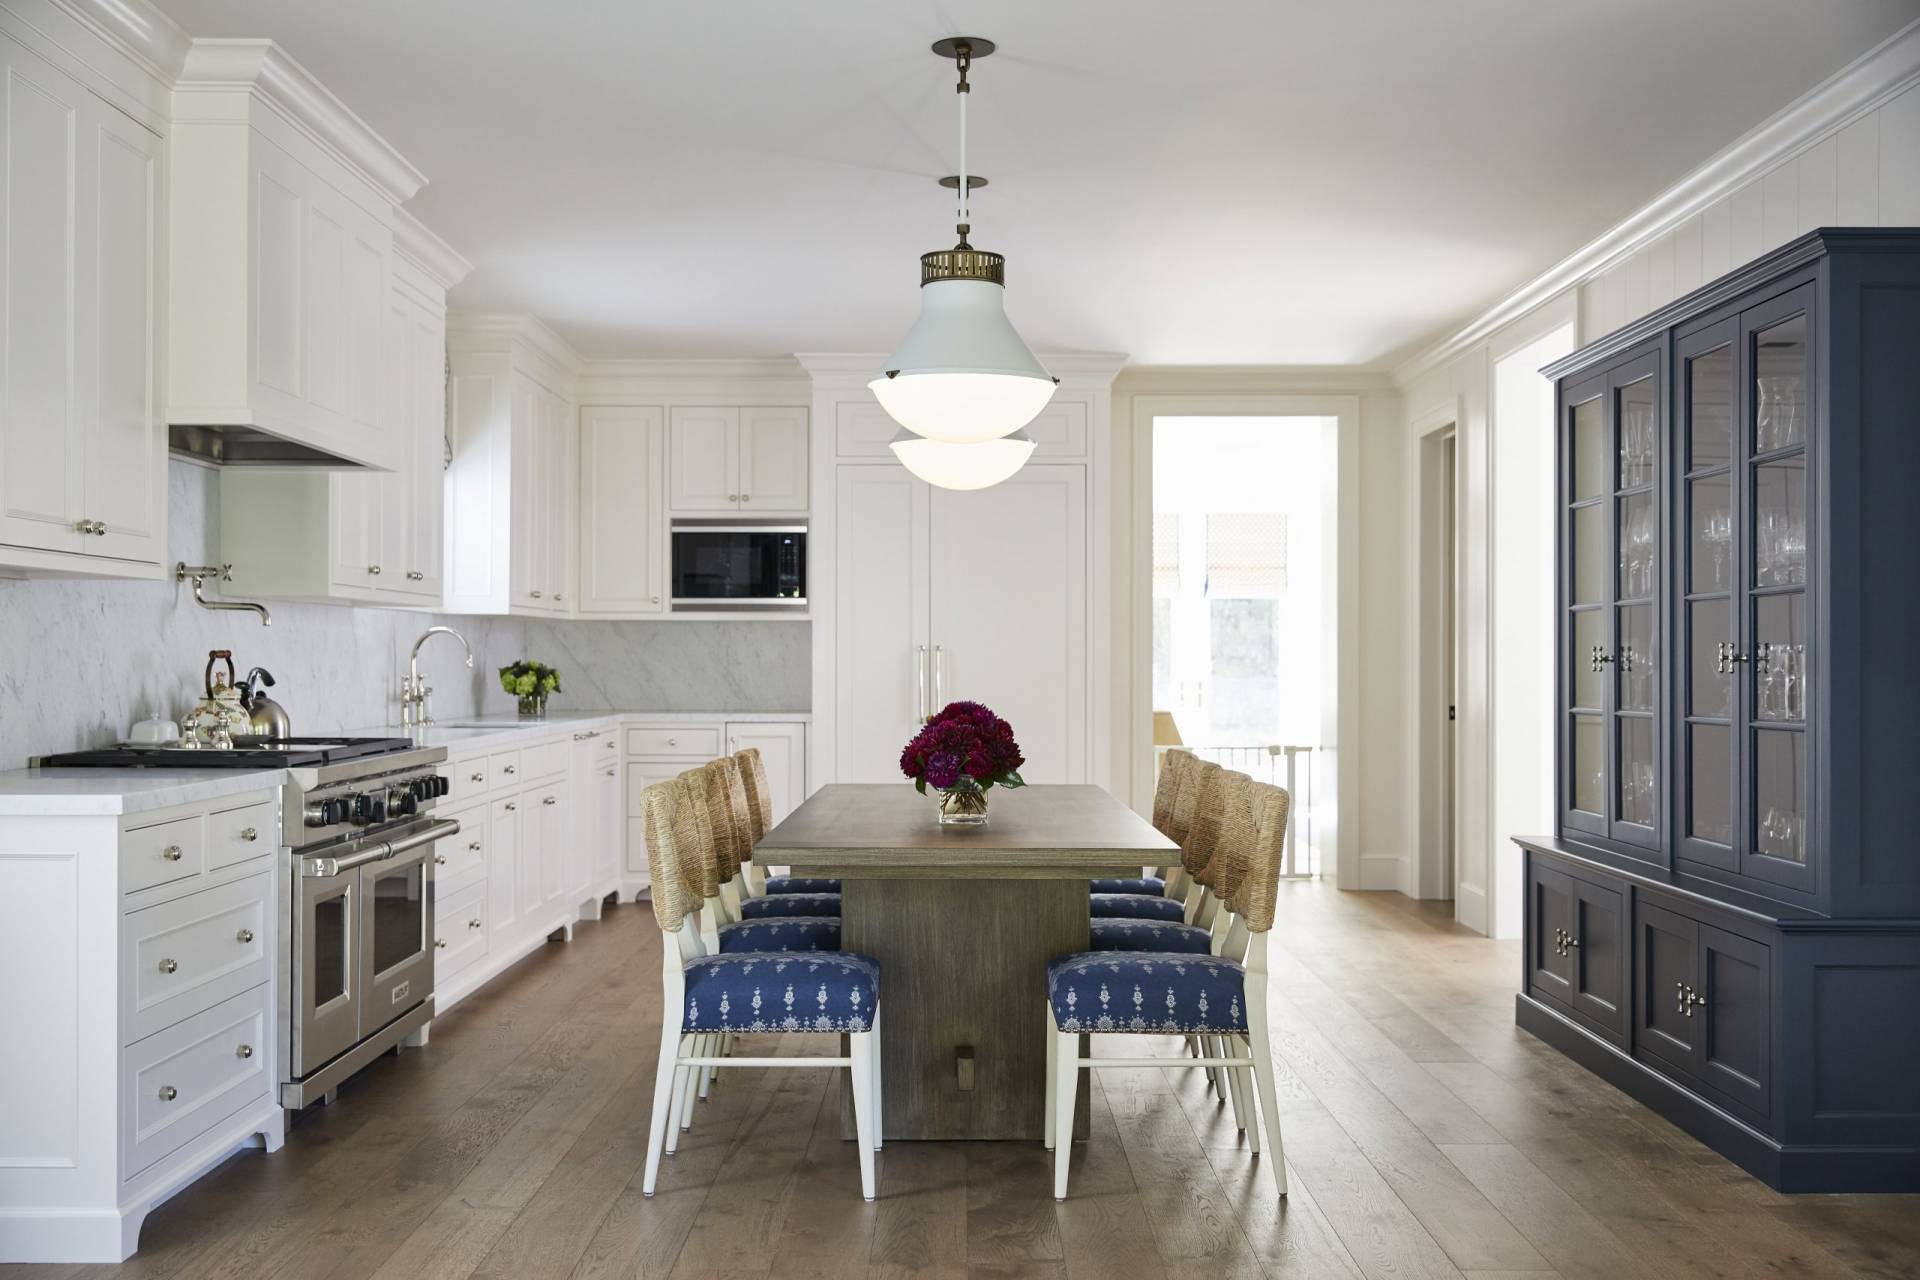 Upholstered kitchen chairs with rattan backs